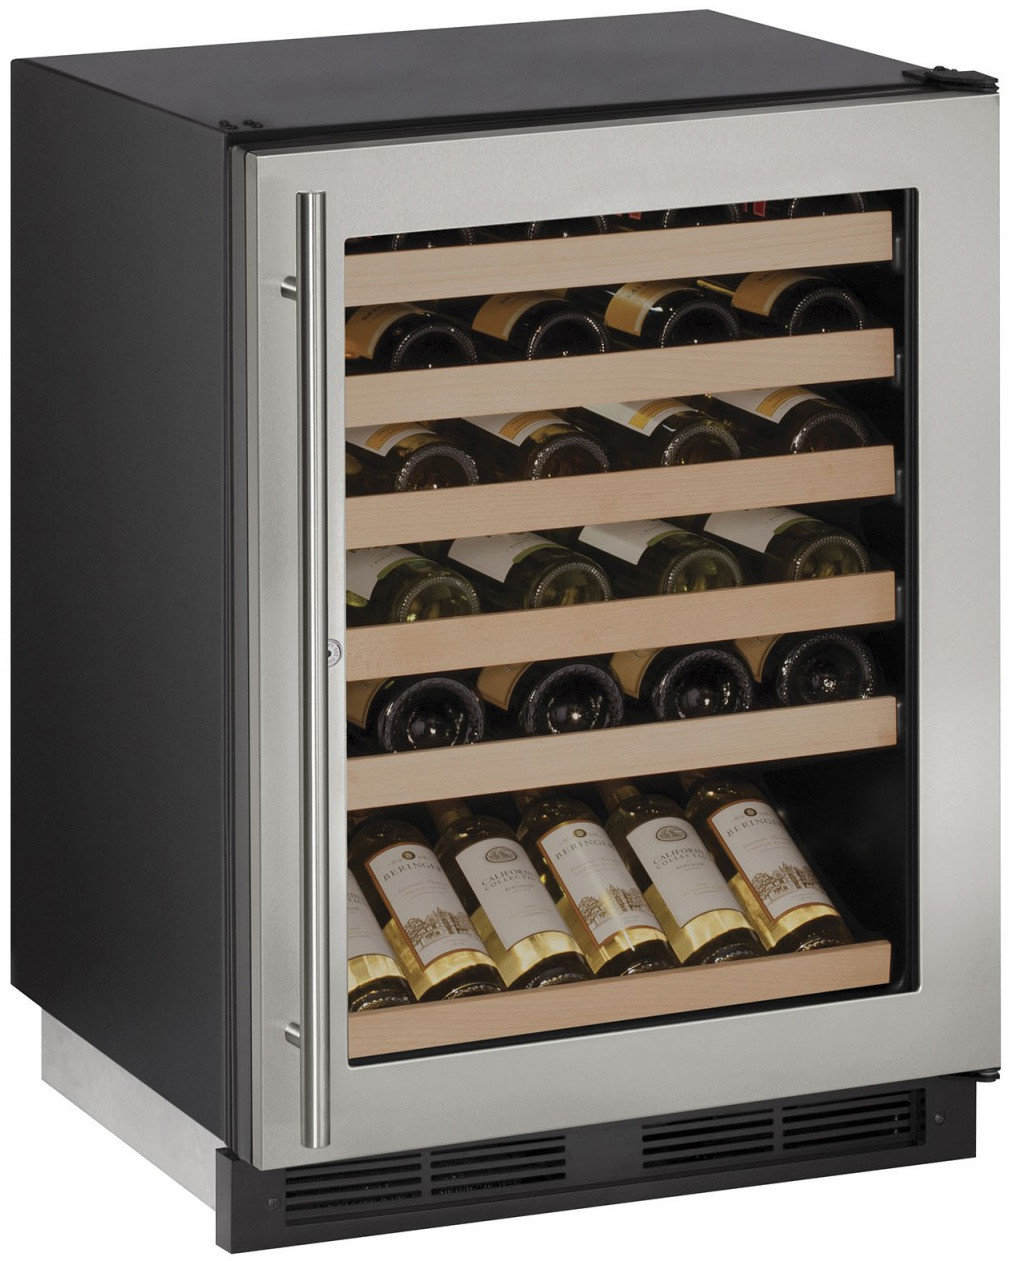 Image result for Wine Fridges